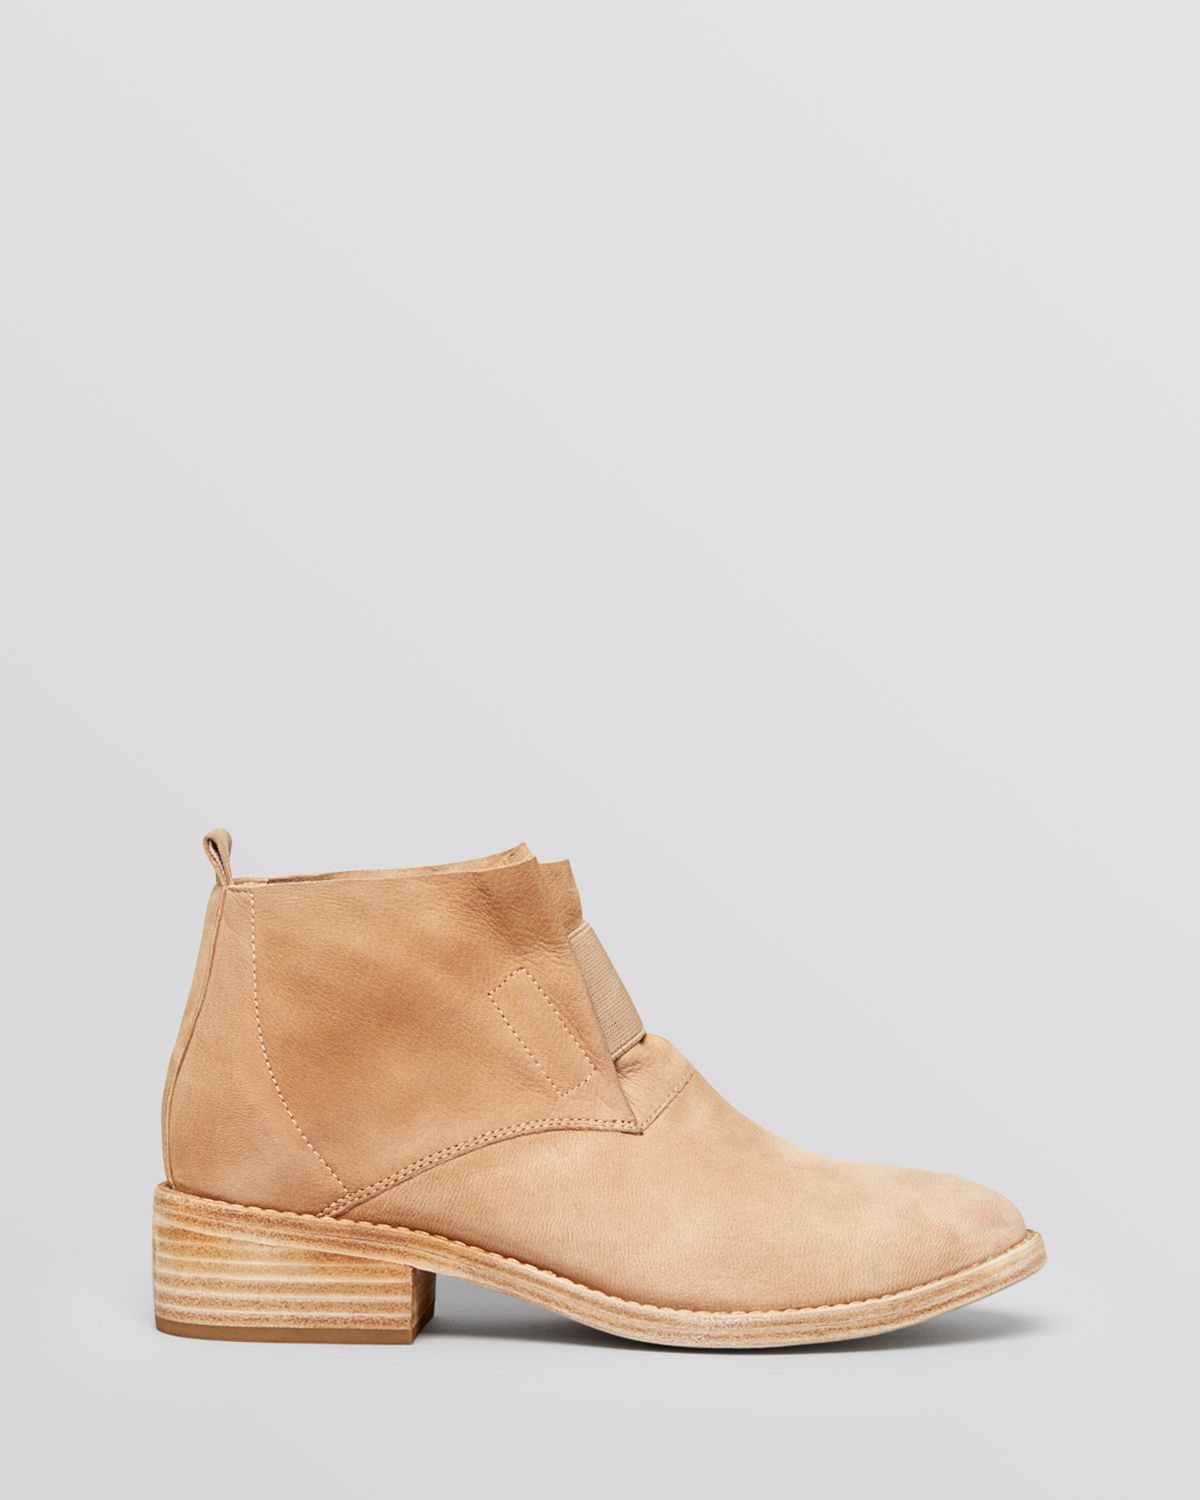 Booties Soul Eileen Fisher Boots Shoes